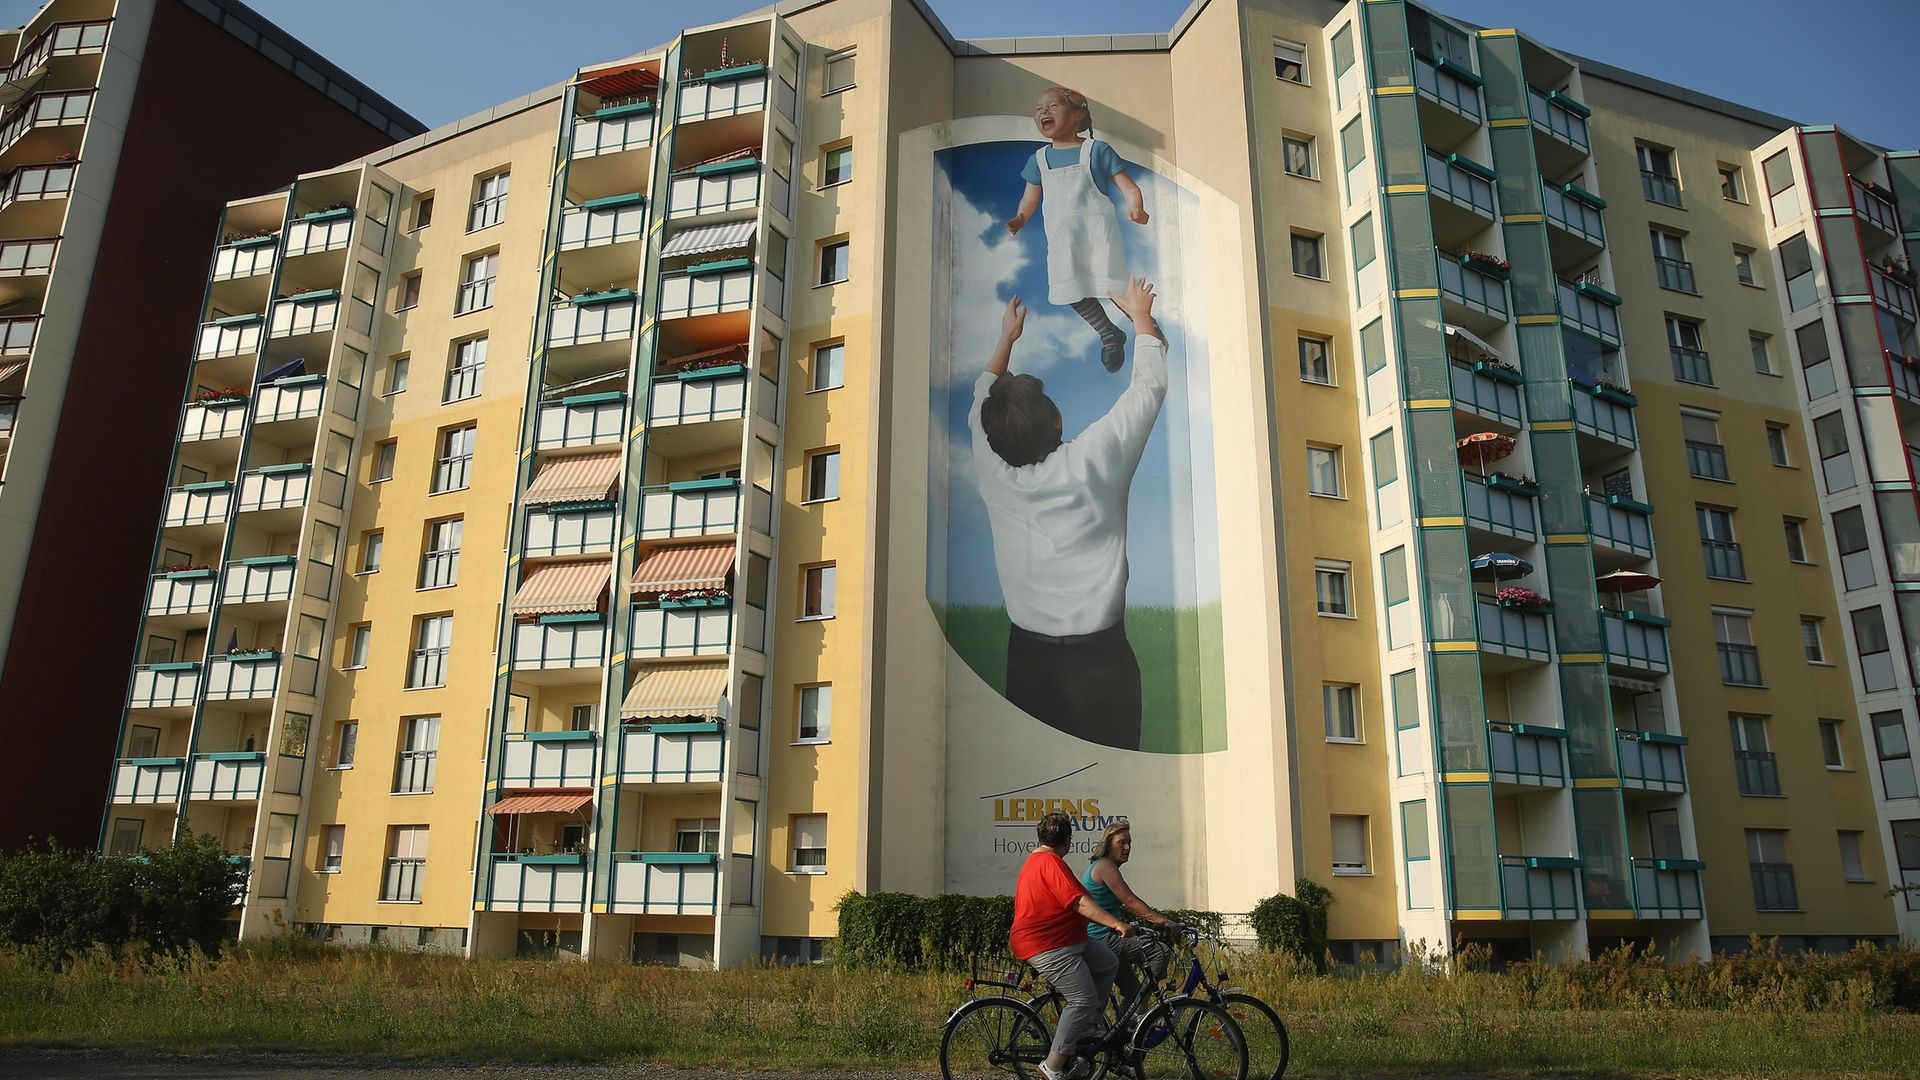 World's greatest windows... an apartment block, complete with mural, in Hoyerswerda, Germany - Credit: Getty Images